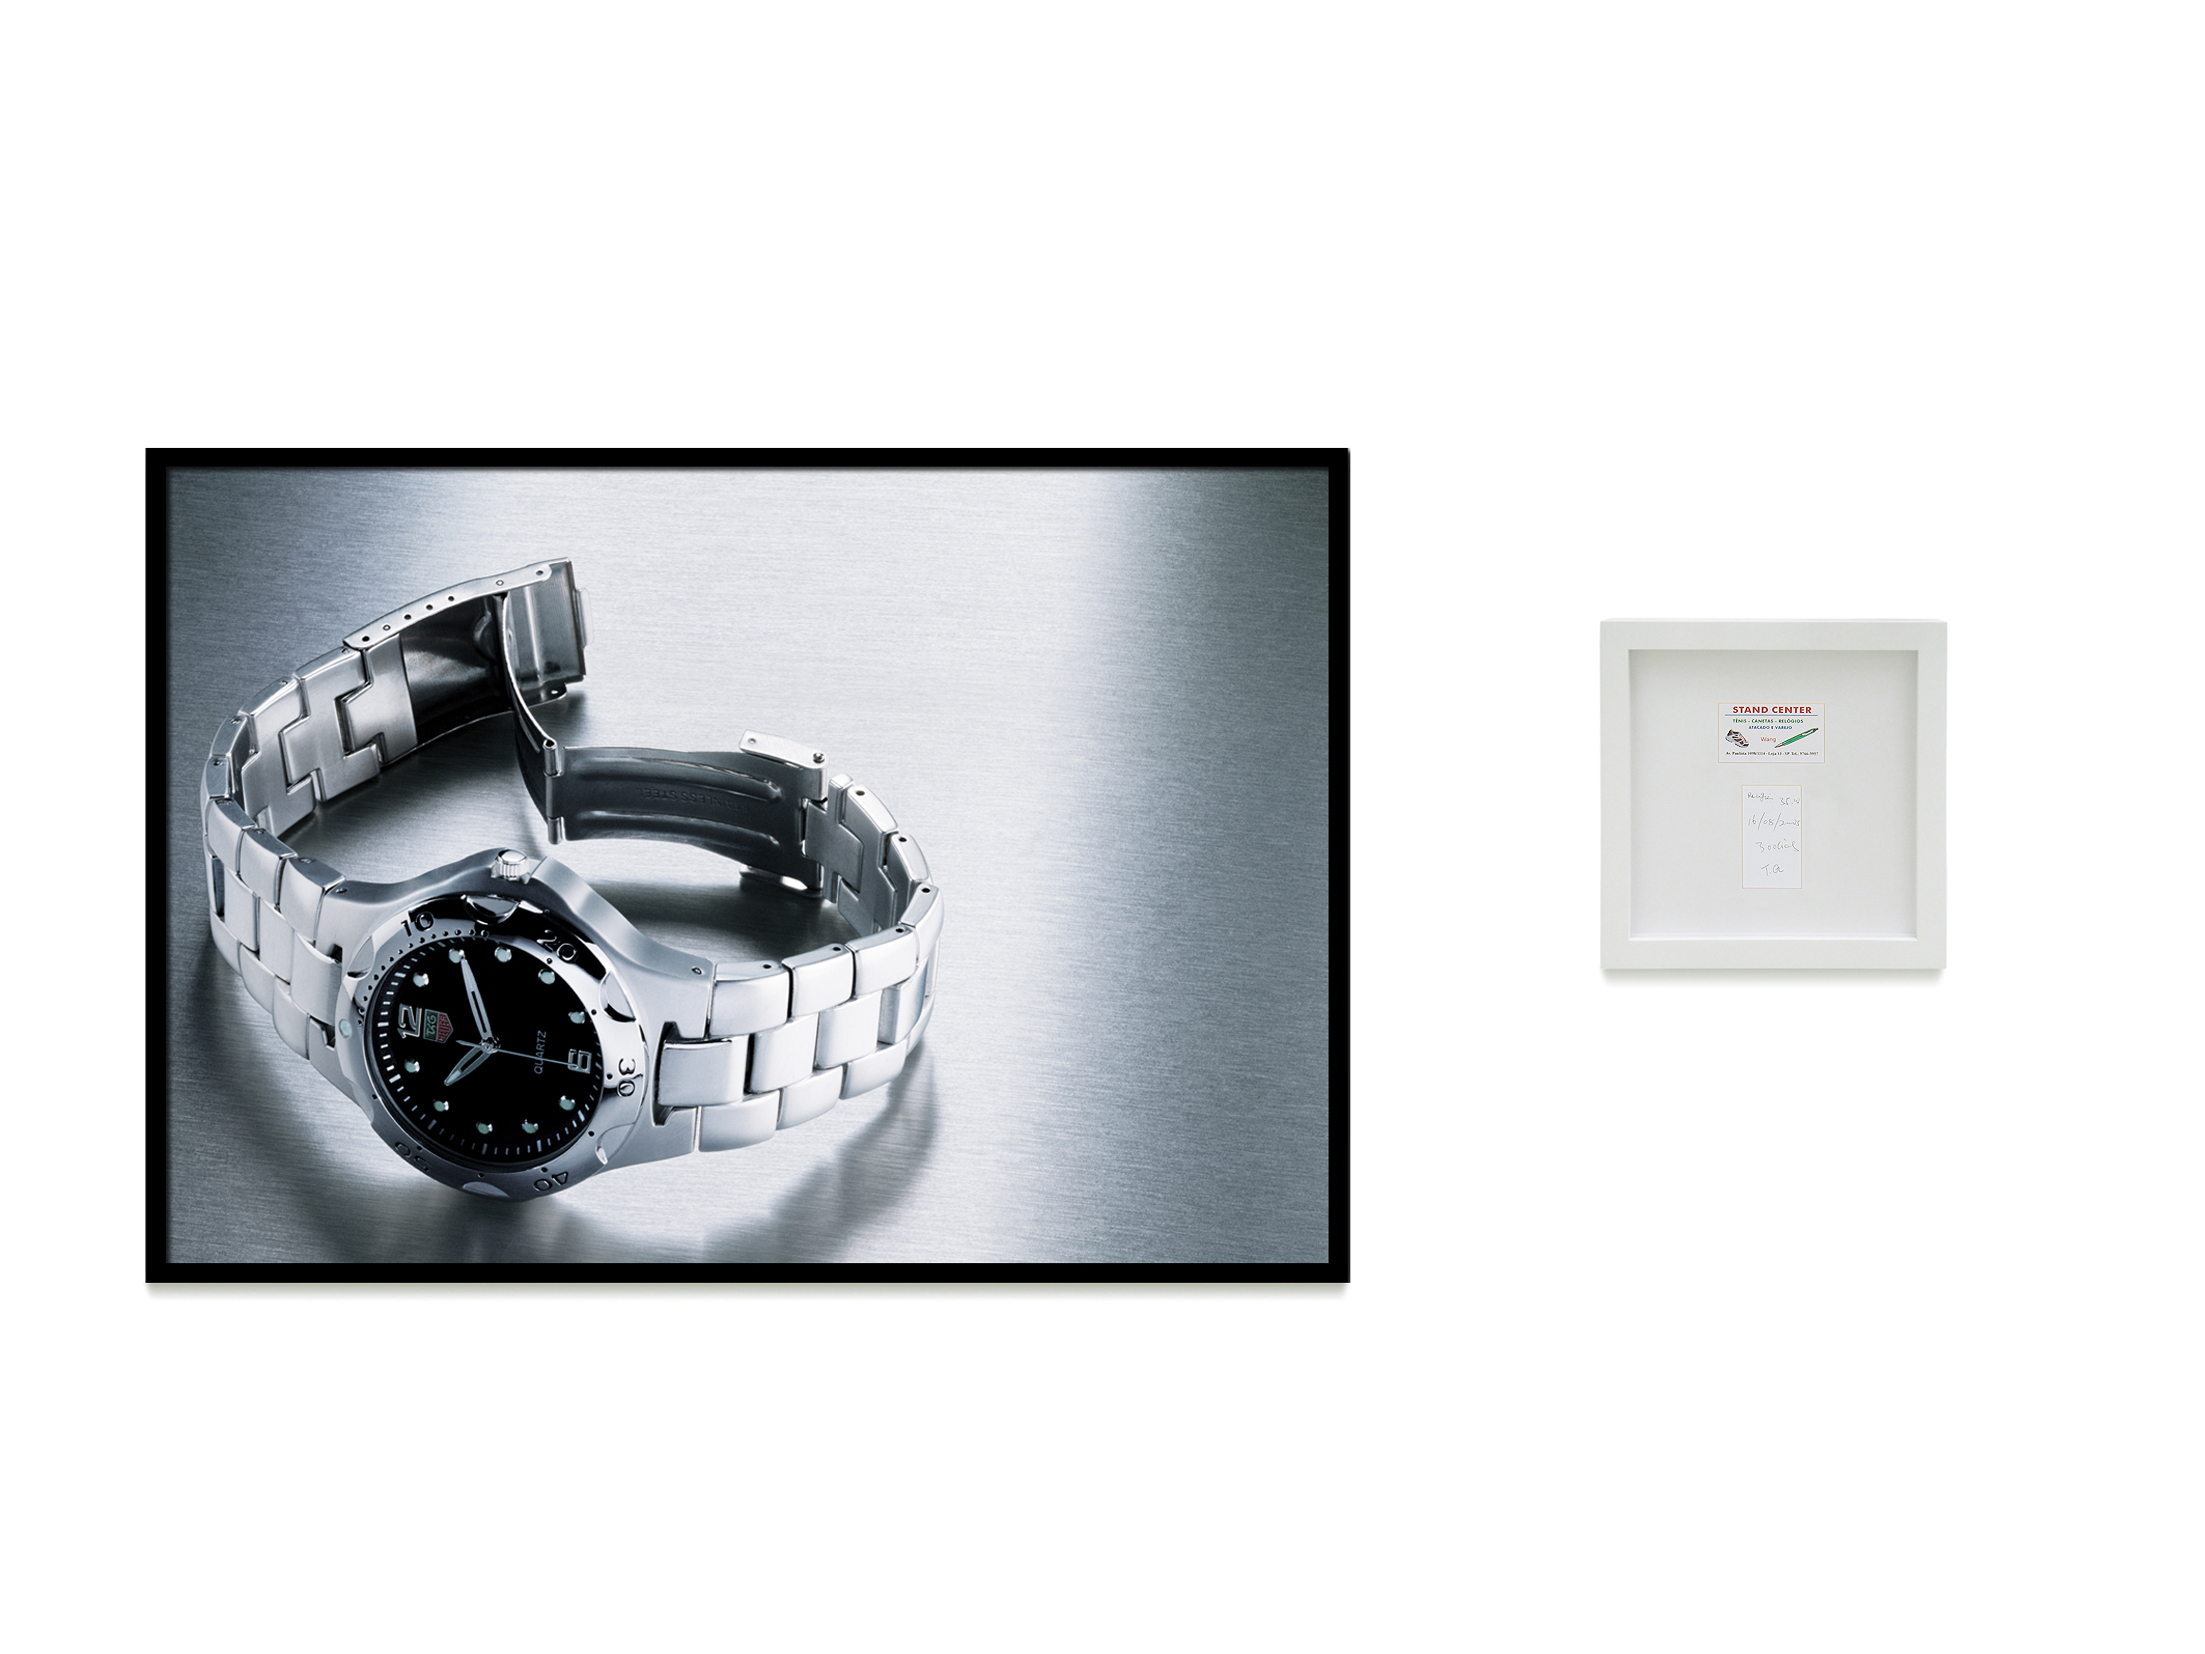 Tag Heuer: R$ 35,00  (What Seduces You series) •  2004 •  Photograph, digital print, sales receipt •    31.5x 47.2  in, 11.8  x 11.8 in (di  pty  ch)